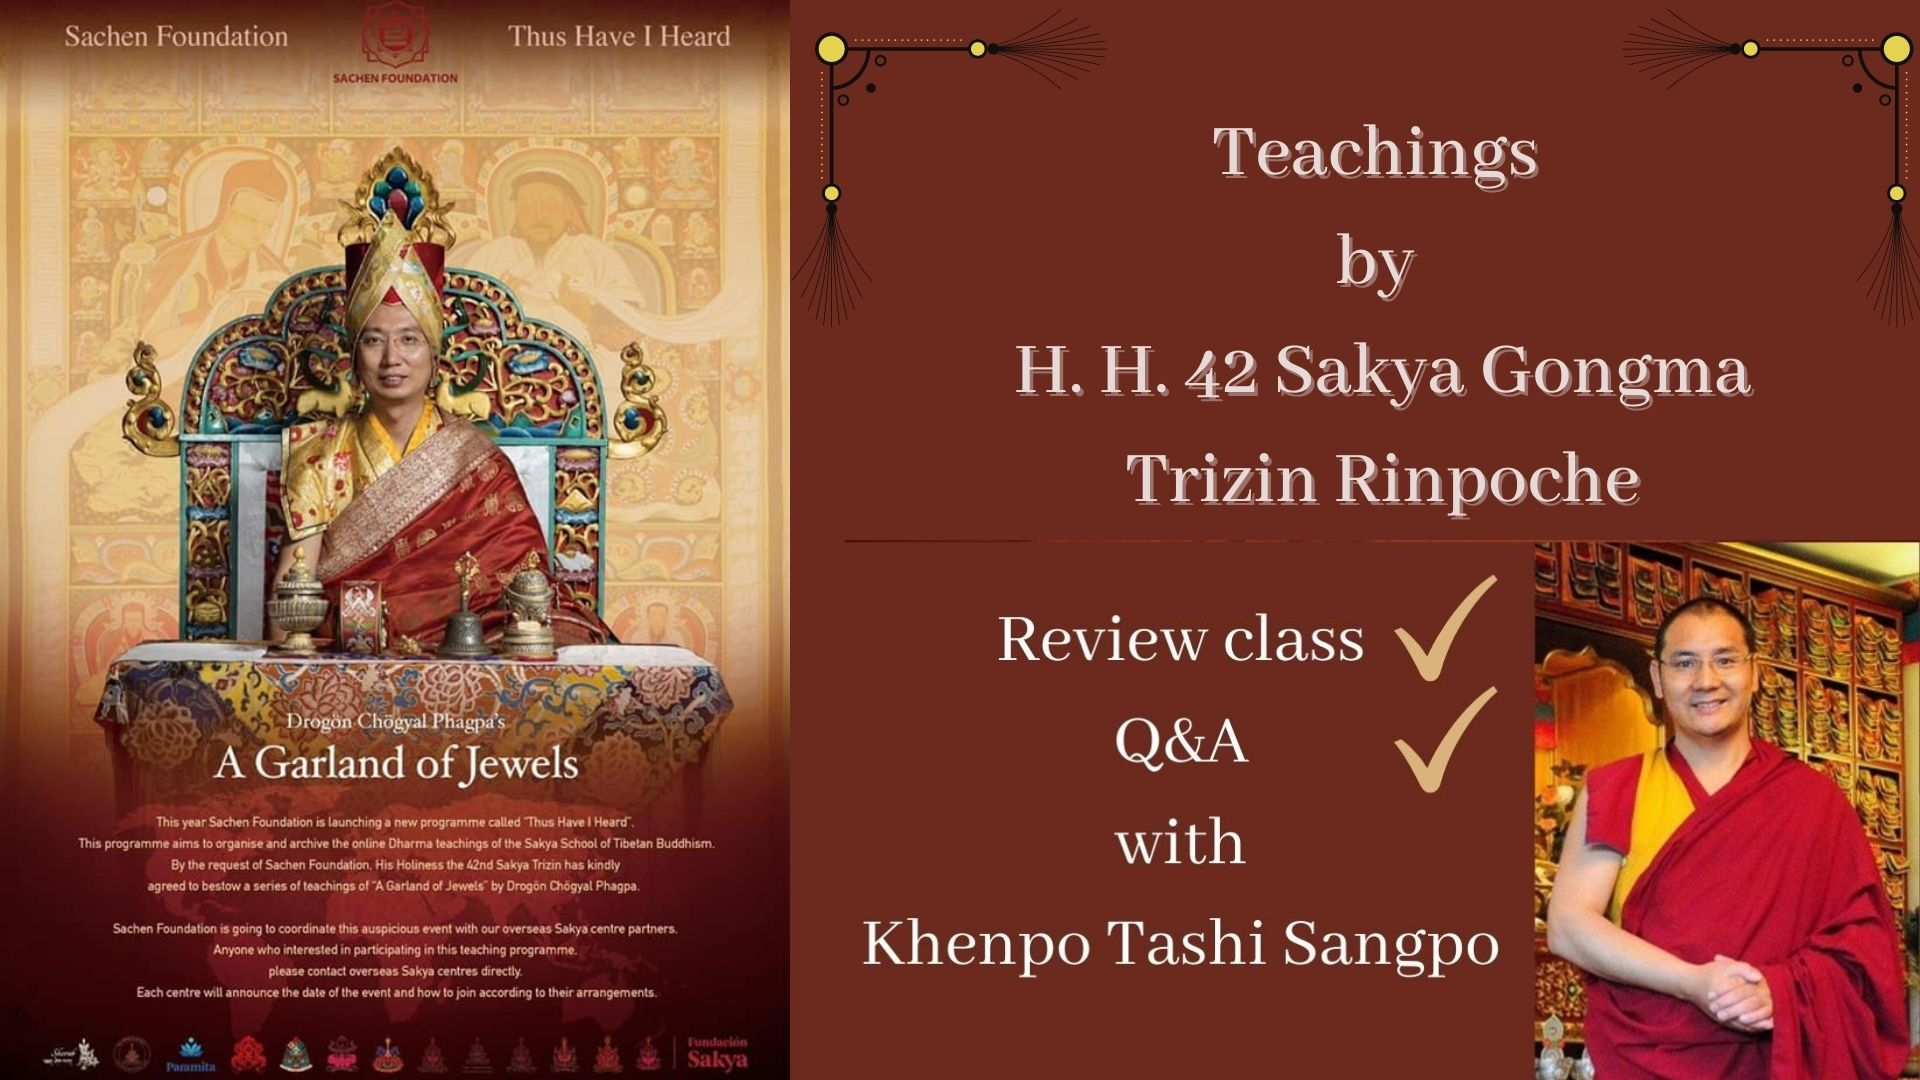 THUS I HAVE HEARD, SESSION 1 & BIRTHDAY OF HH 41 SAKYA GONGMA Trichen Rinpoche